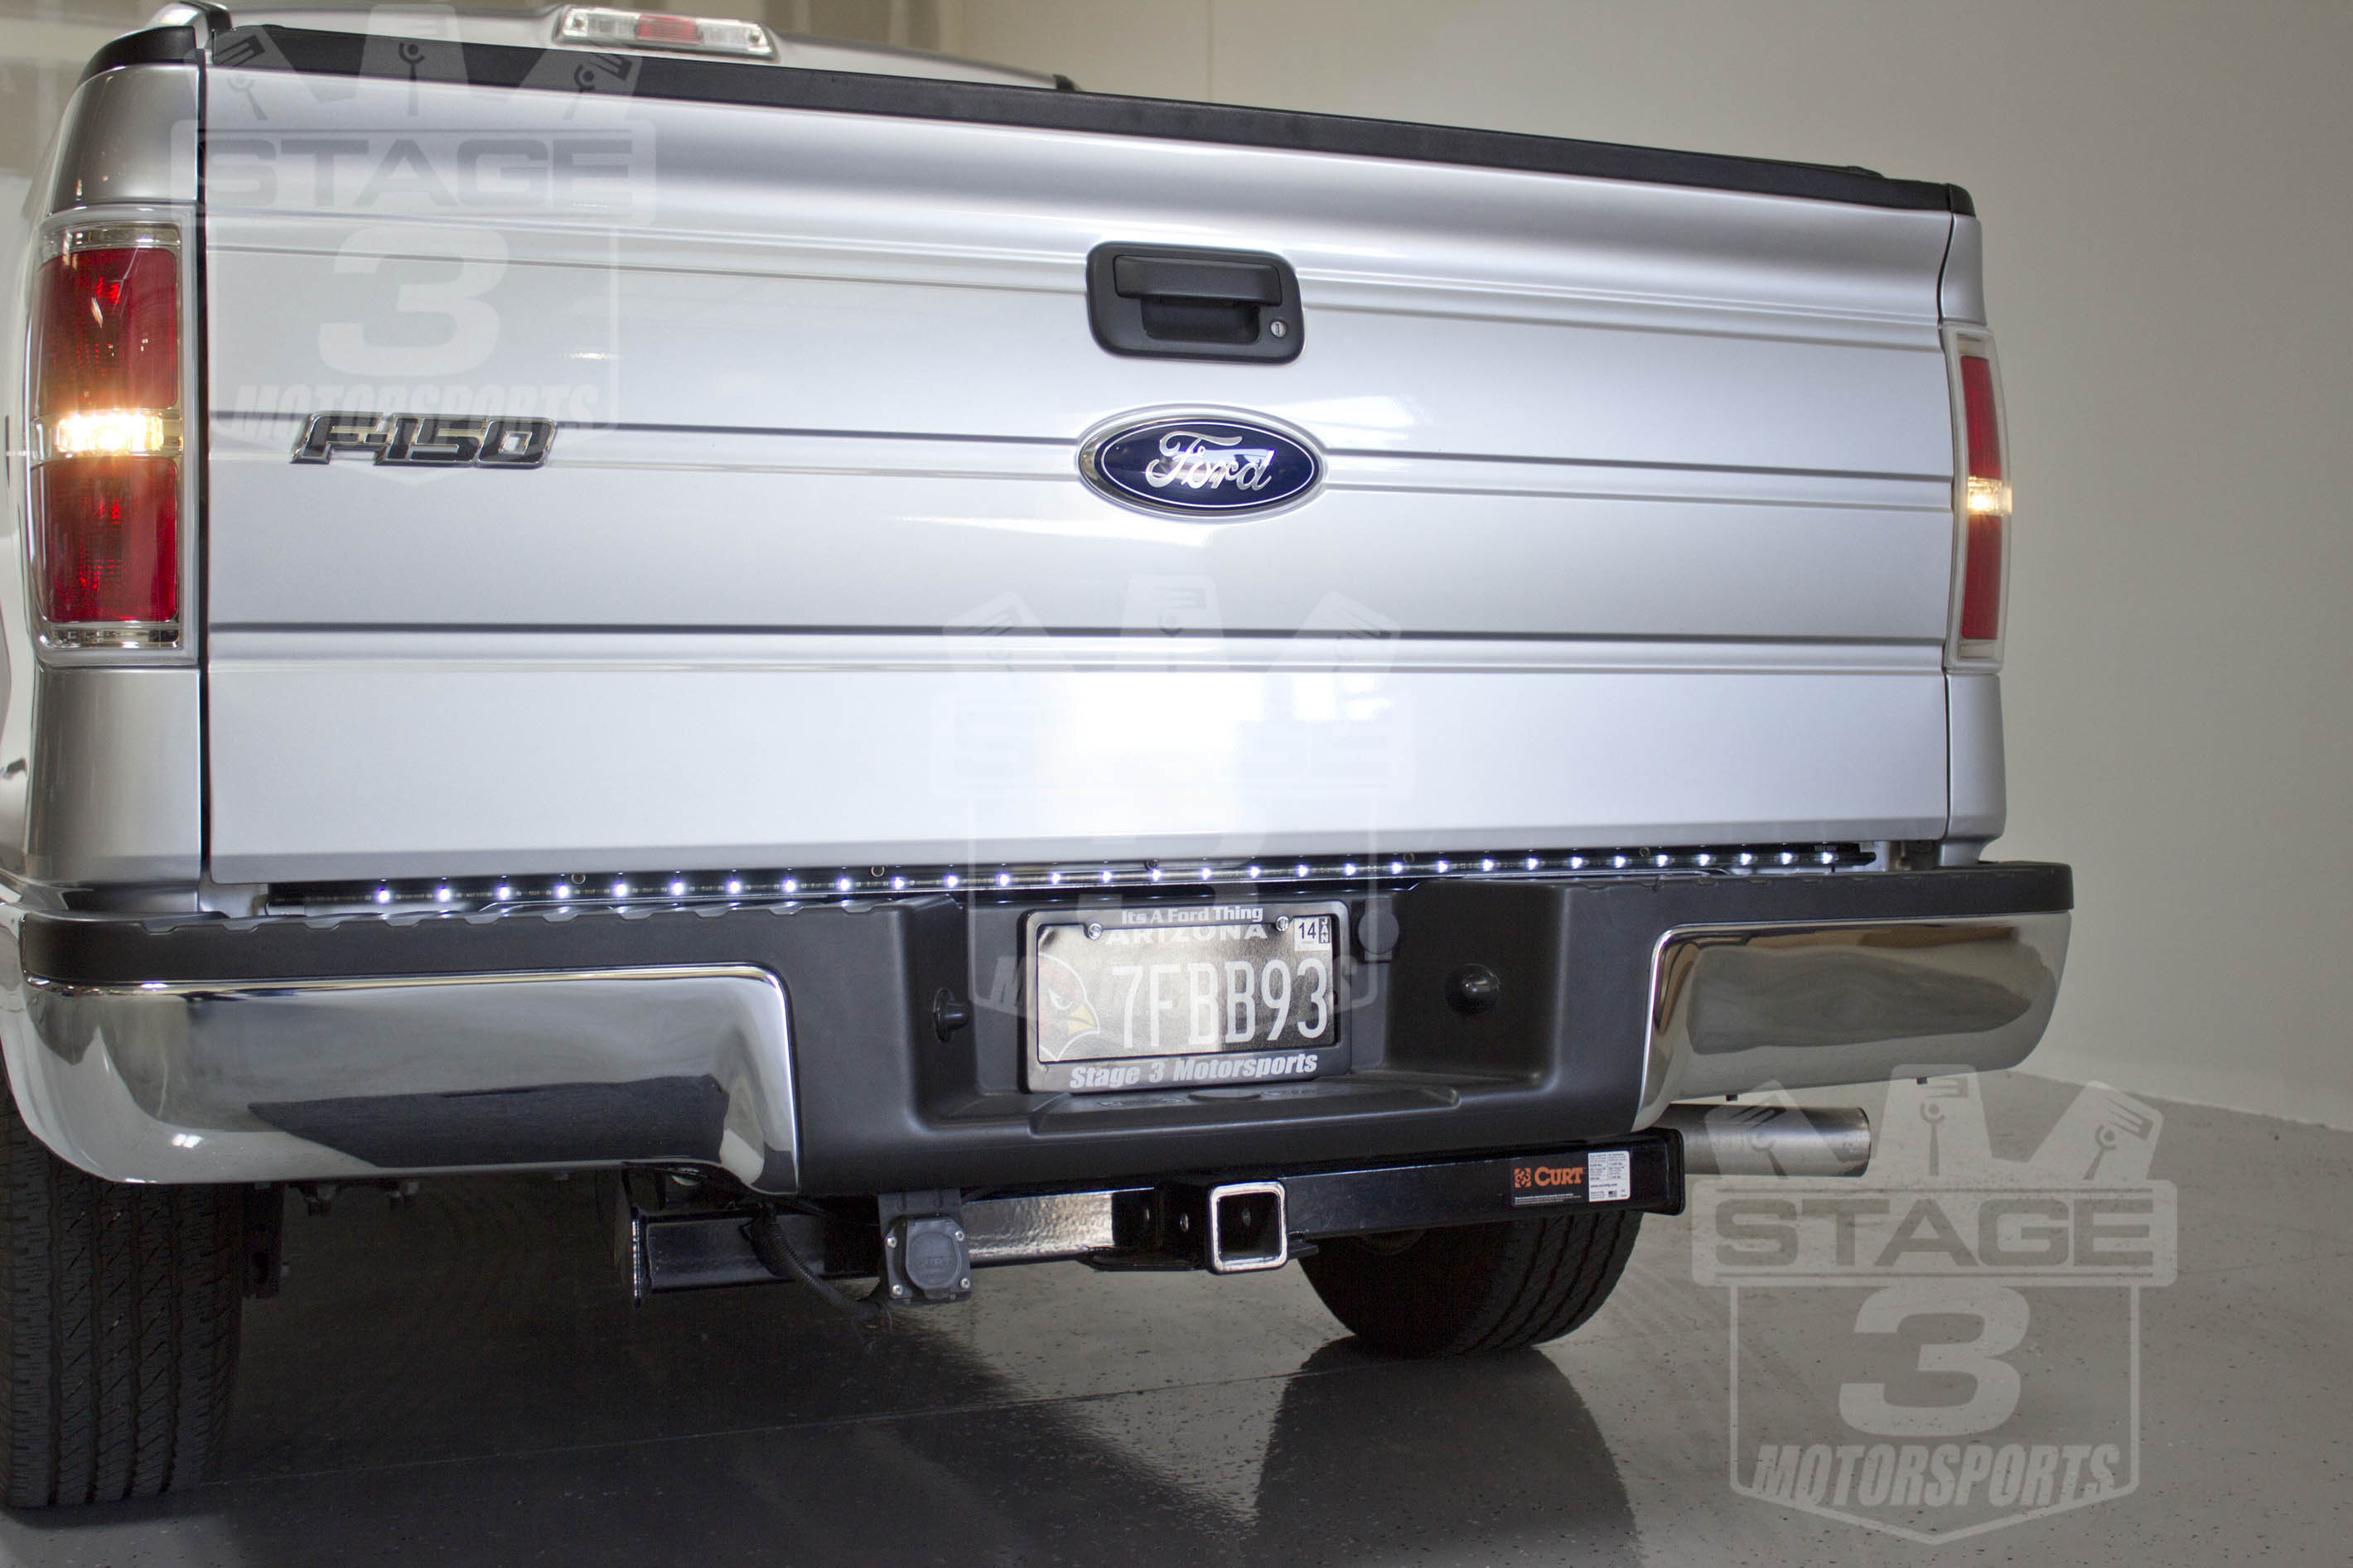 F150 Recon Tail Gate Led Light Bar Installed